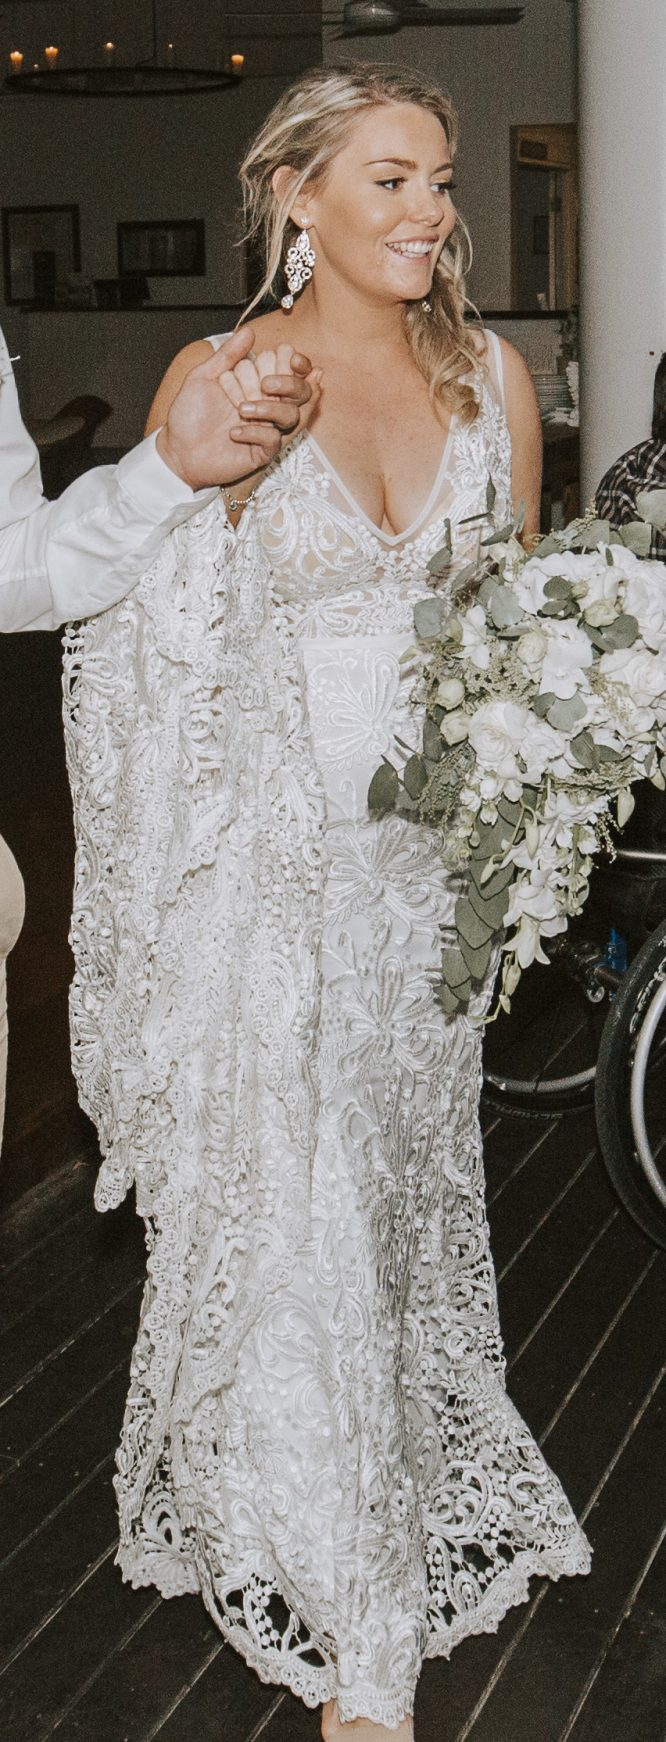 made with love wedding dress | Only dream dresses